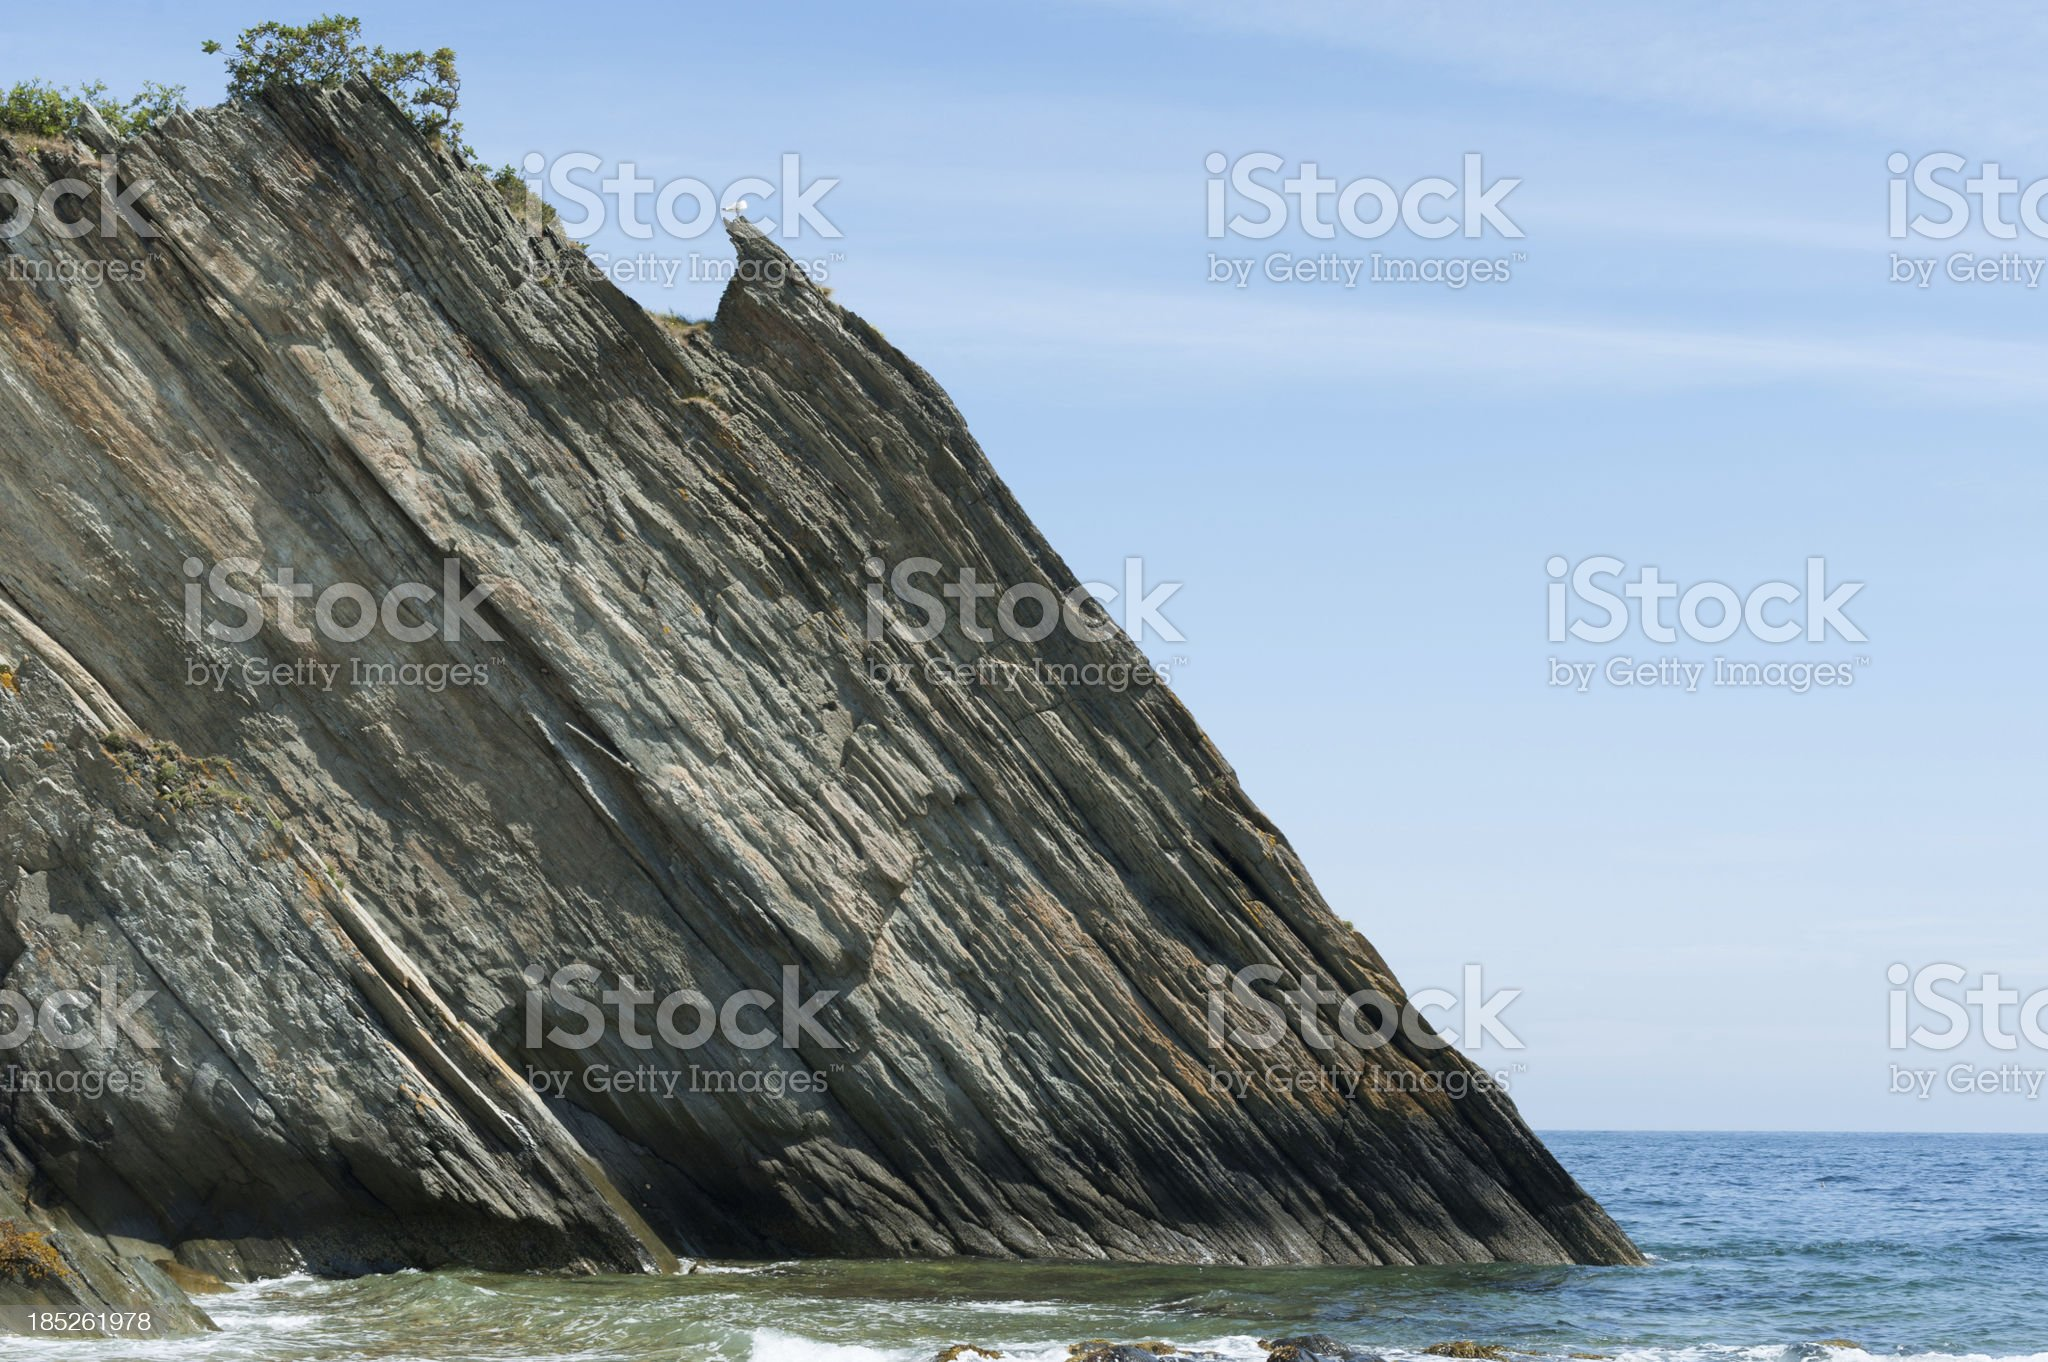 Sedimentary Rock royalty-free stock photo